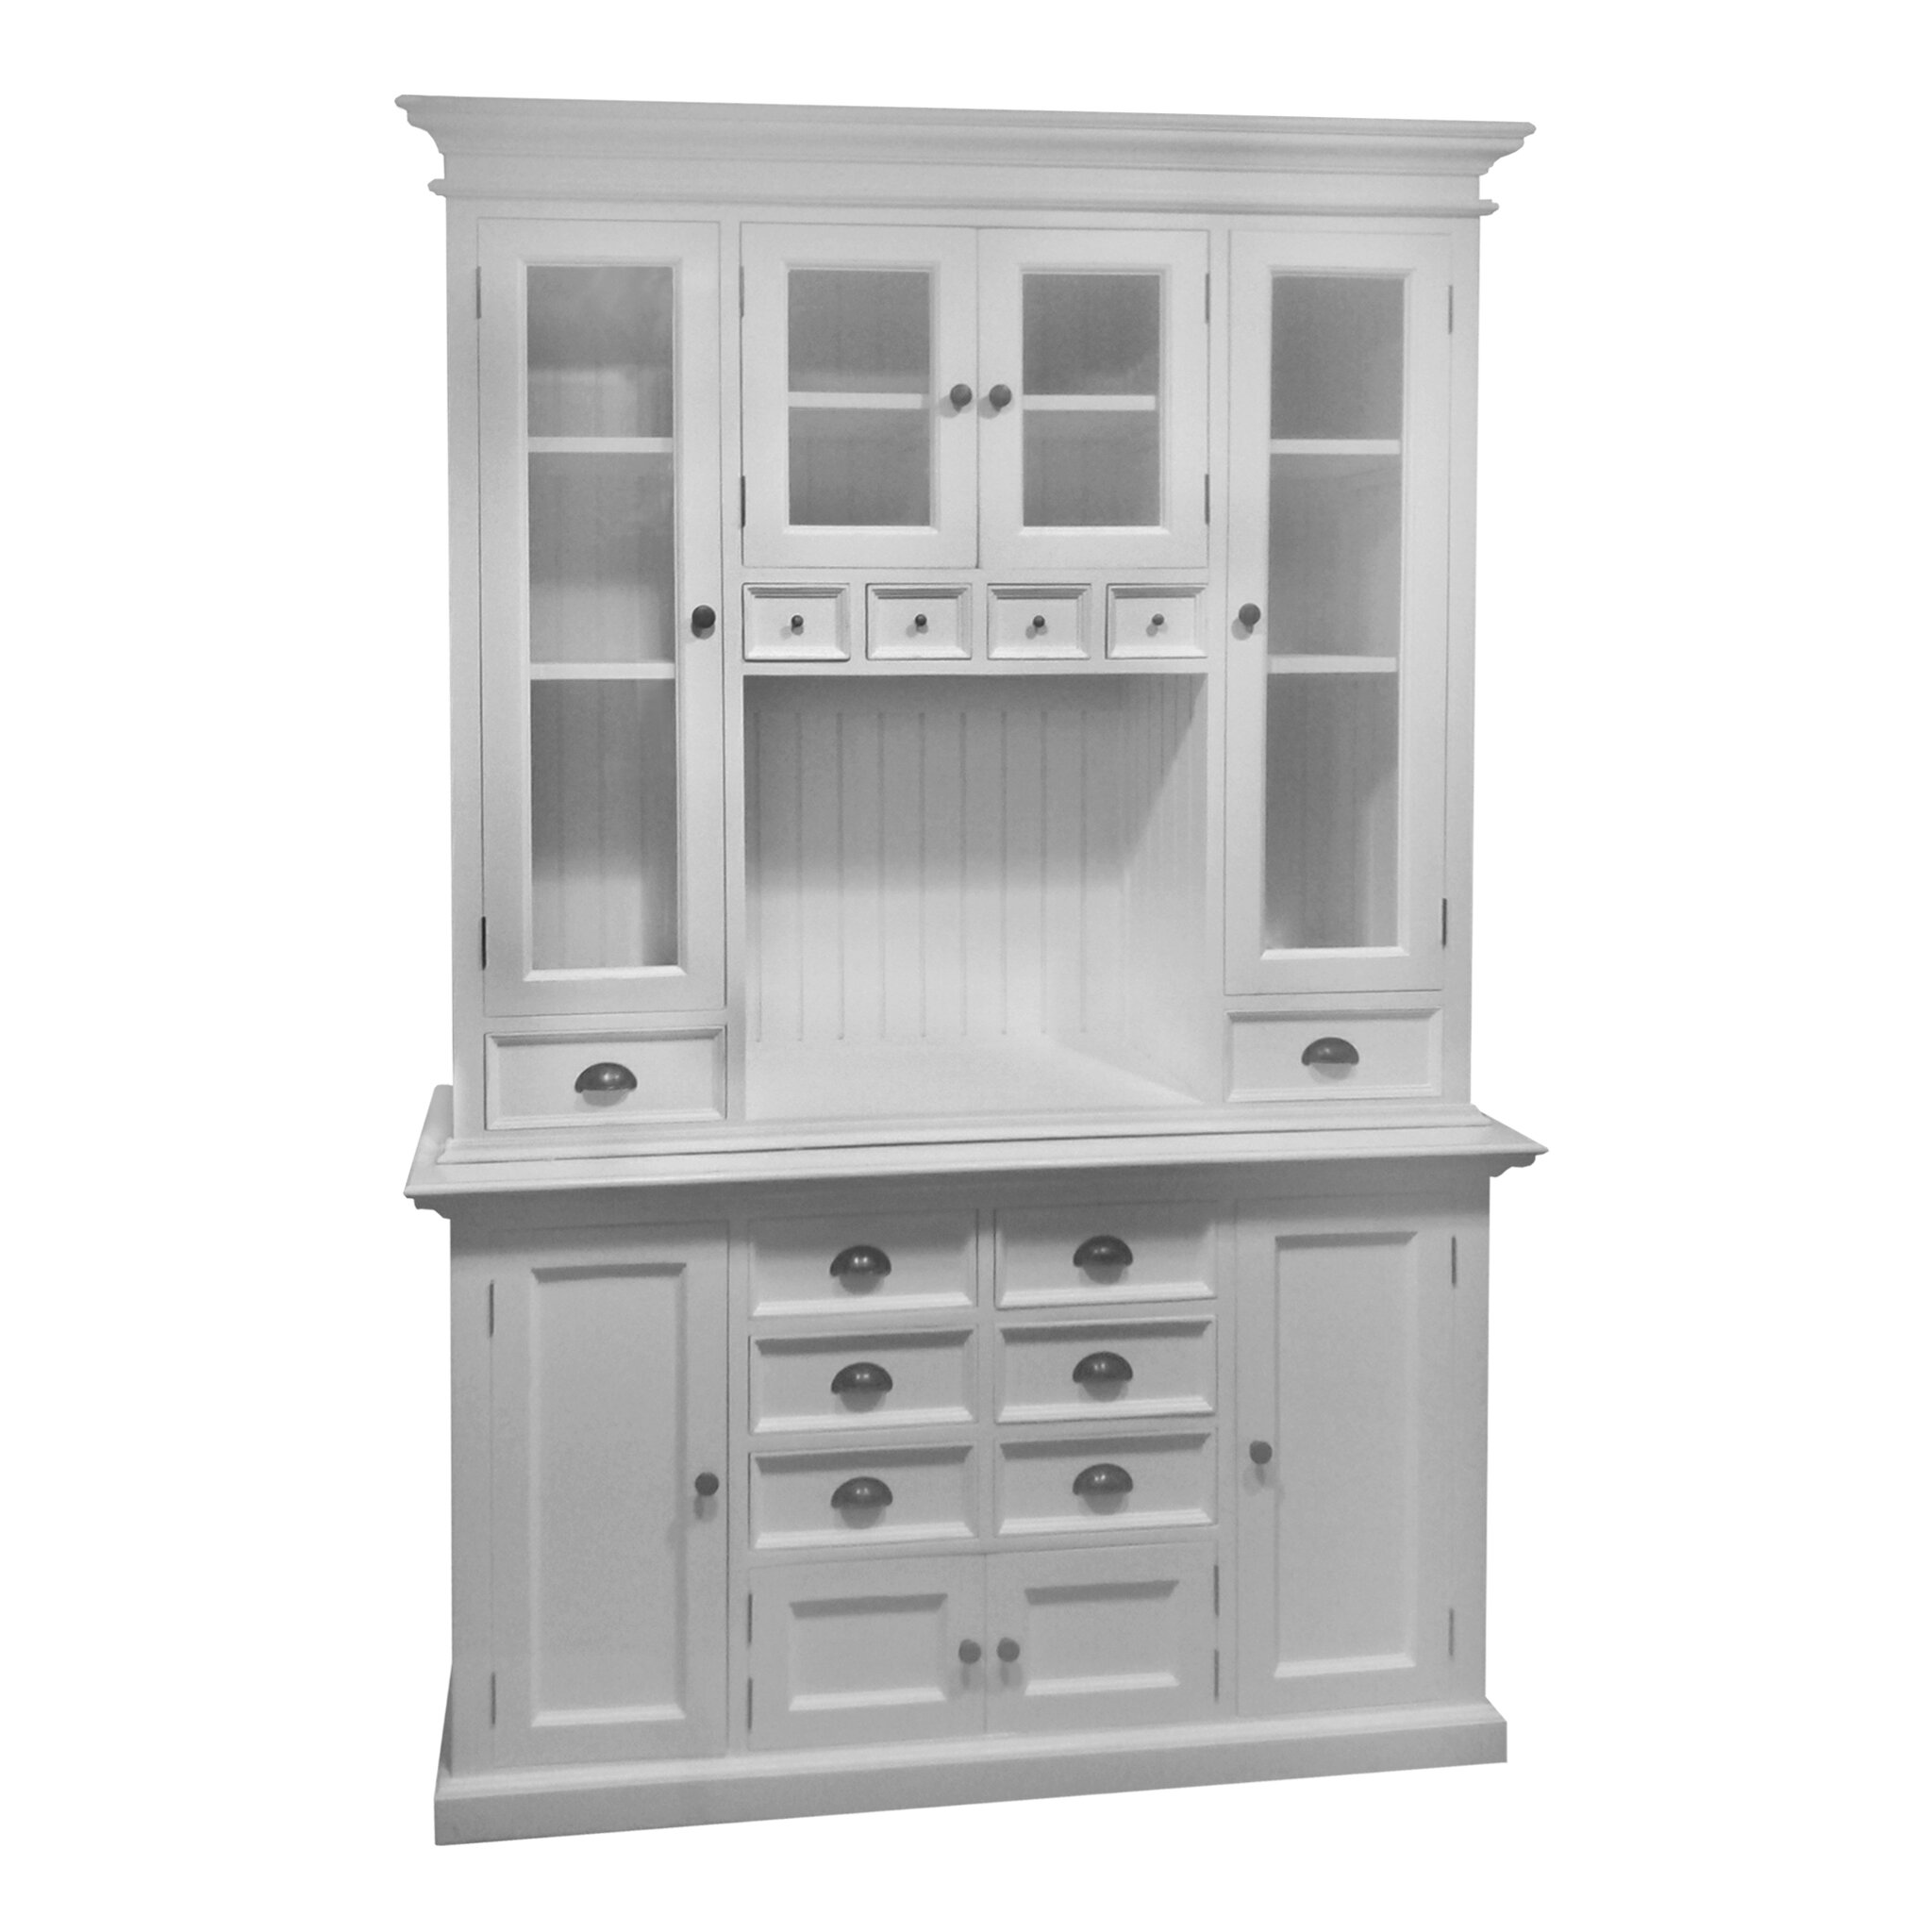 NovaSolo Halifax Kitchen China Cabinet amp Reviews Wayfair : NovaSolo Halifax Kitchen China Cabinet BCA597 from www.wayfair.com size 2048 x 2048 jpeg 253kB